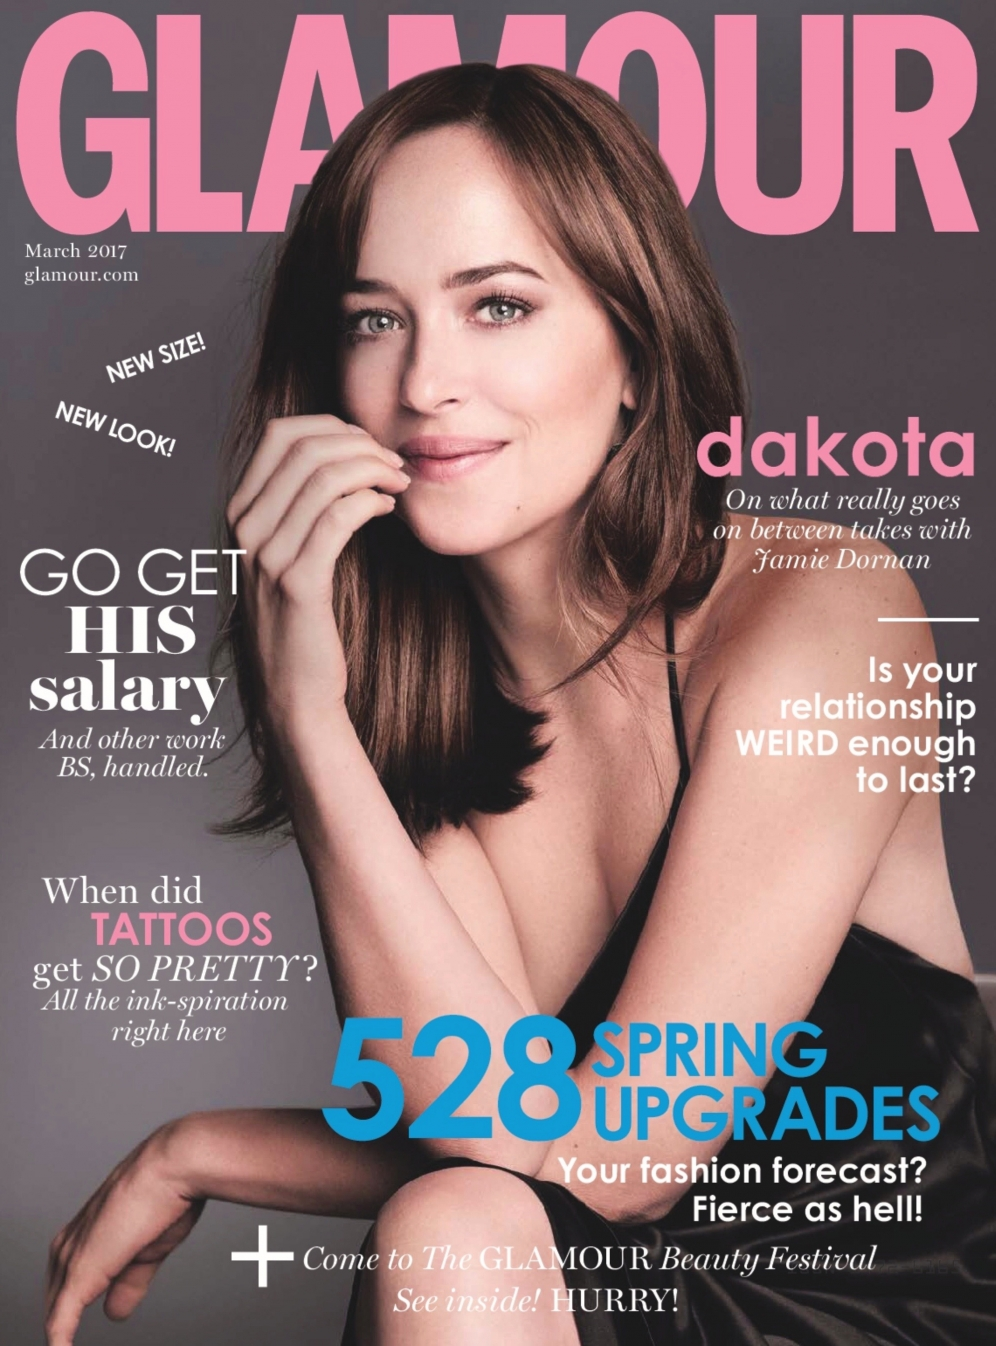 Dakota Johnston | Glamour